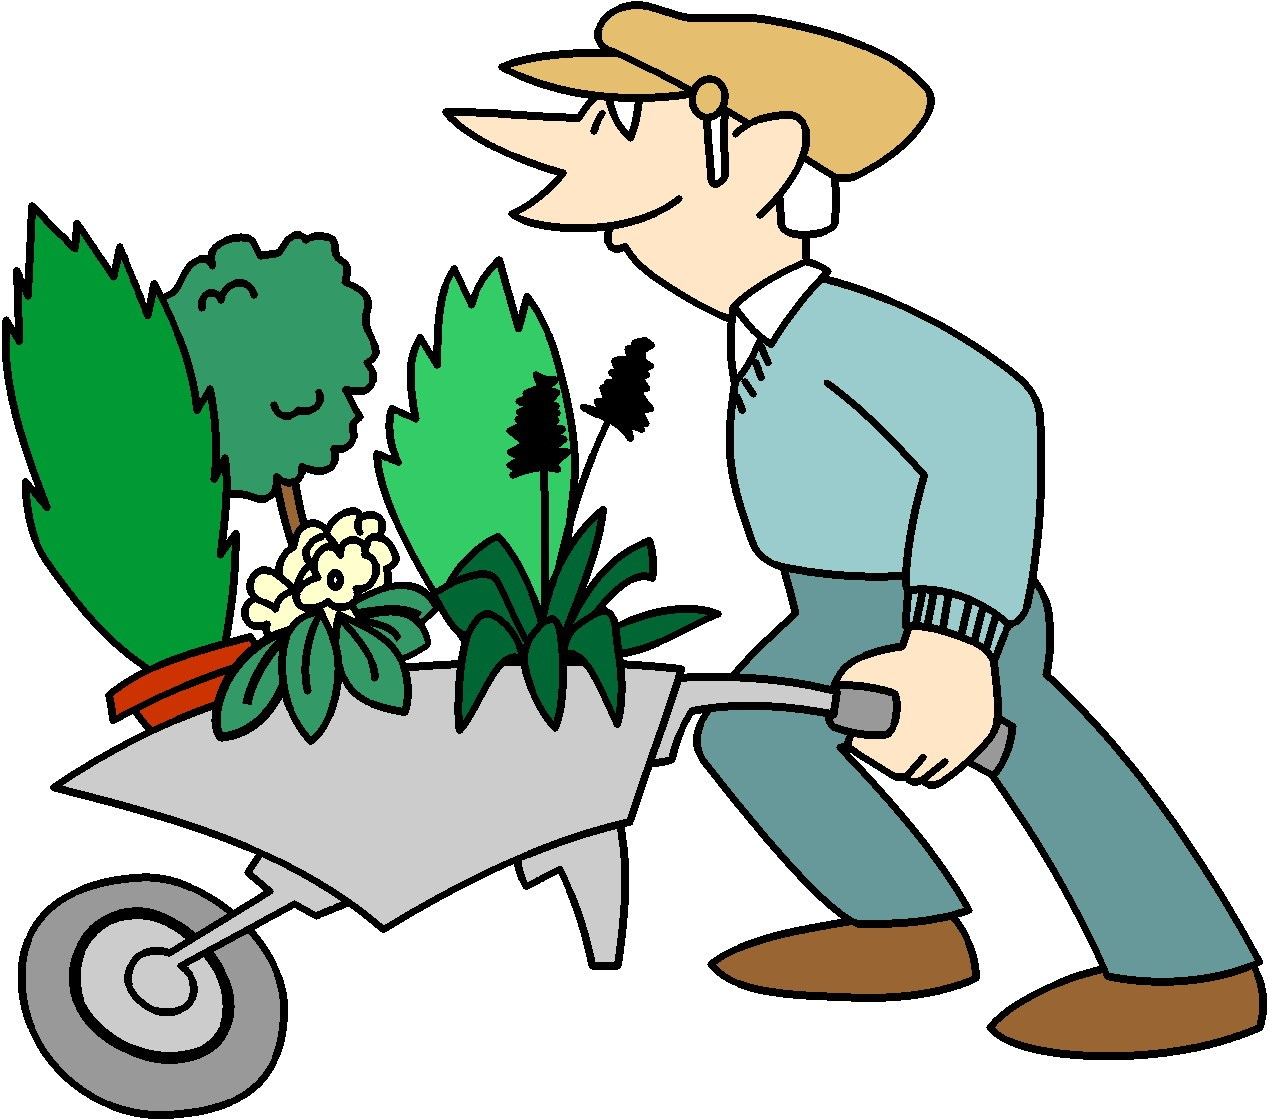 Free gardening clipart images 4 » Clipart Portal.